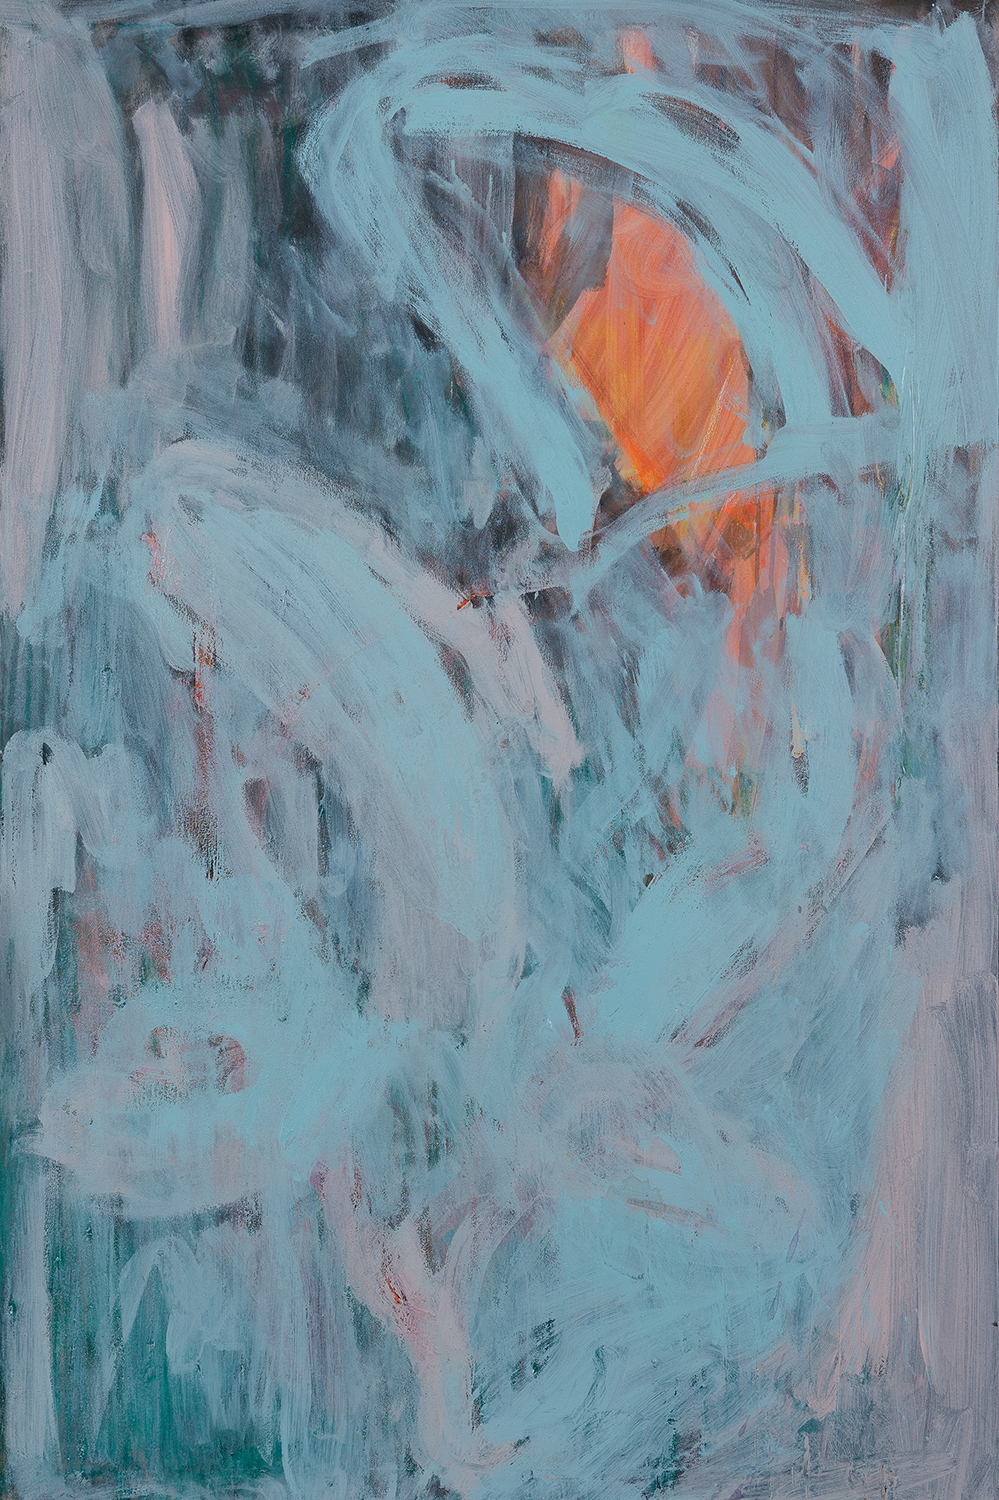 light blue, orange, 2011